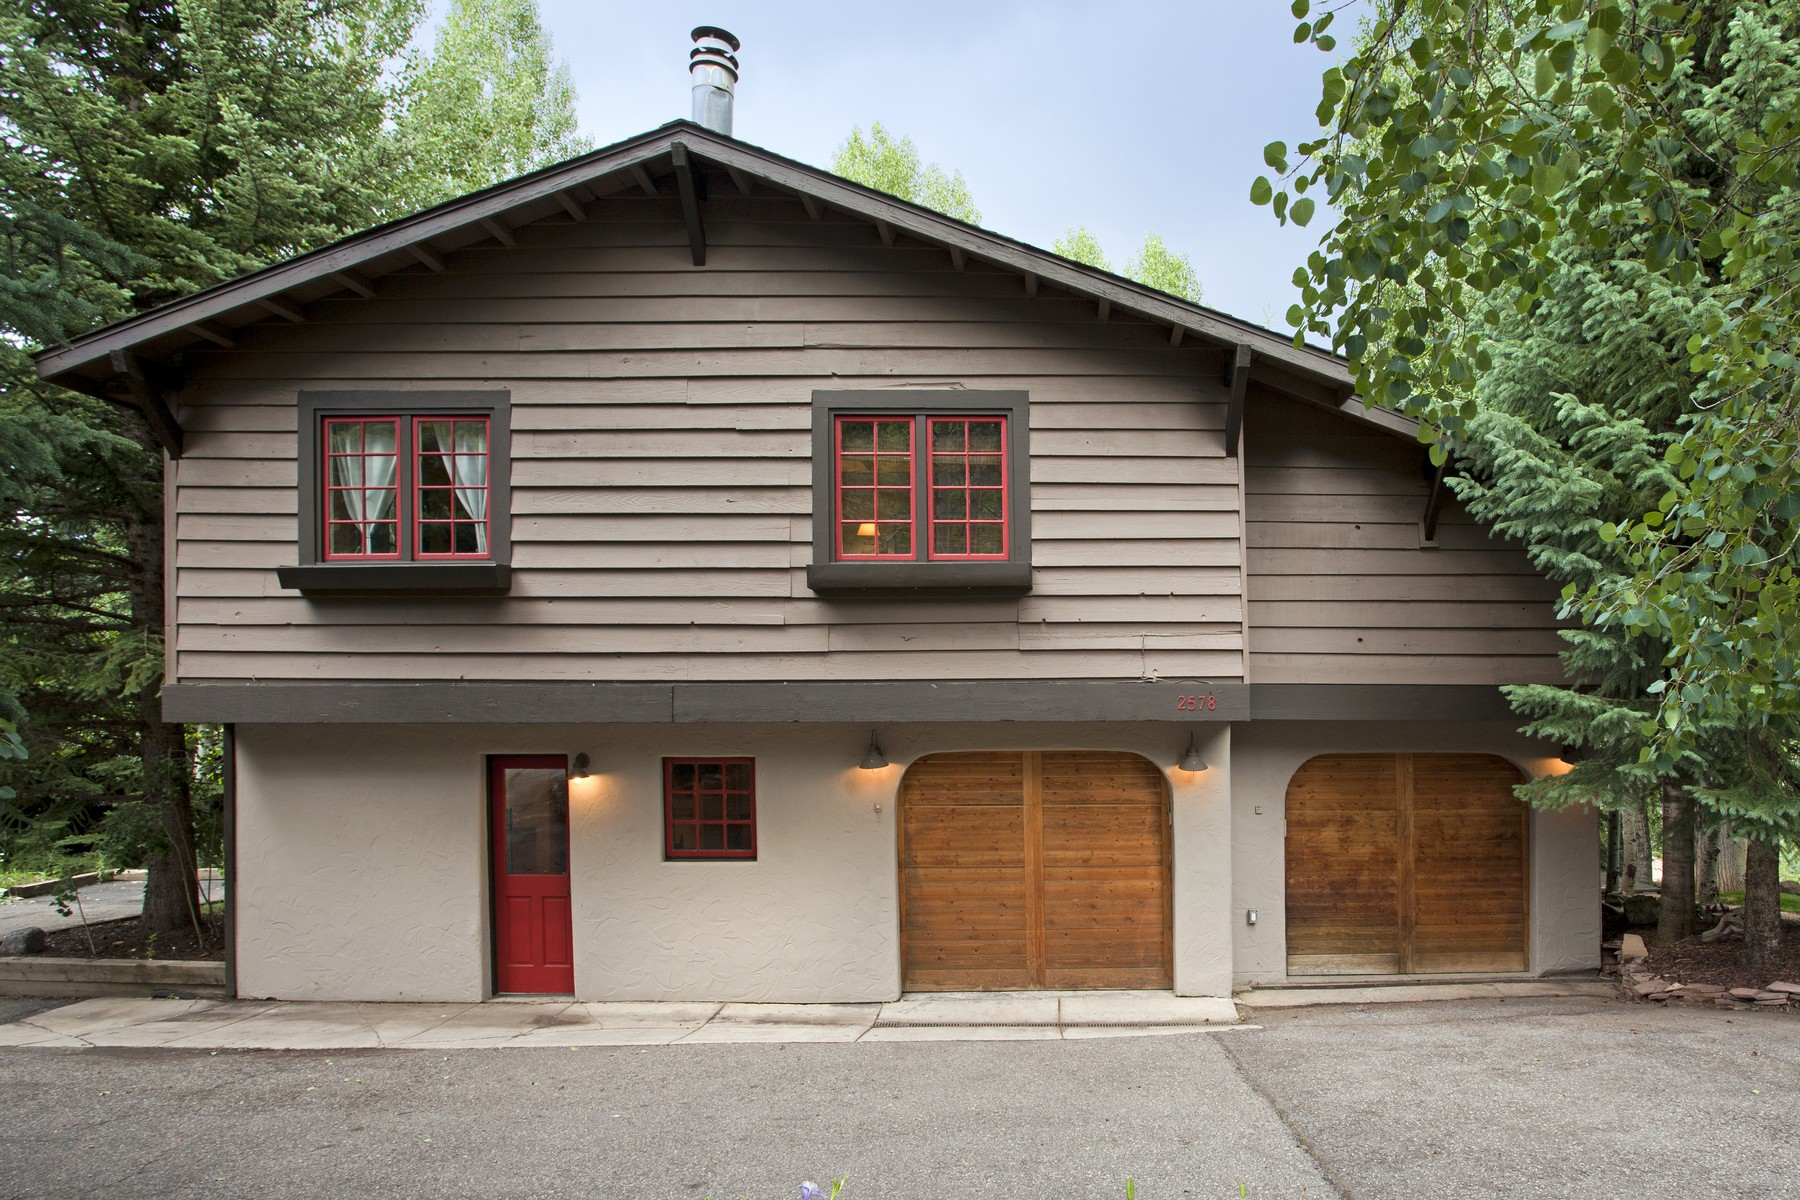 Single Family Home for Active at European Chalet Worth Seeing 2578 Arosa Dr. Vail, Colorado 81657 United States